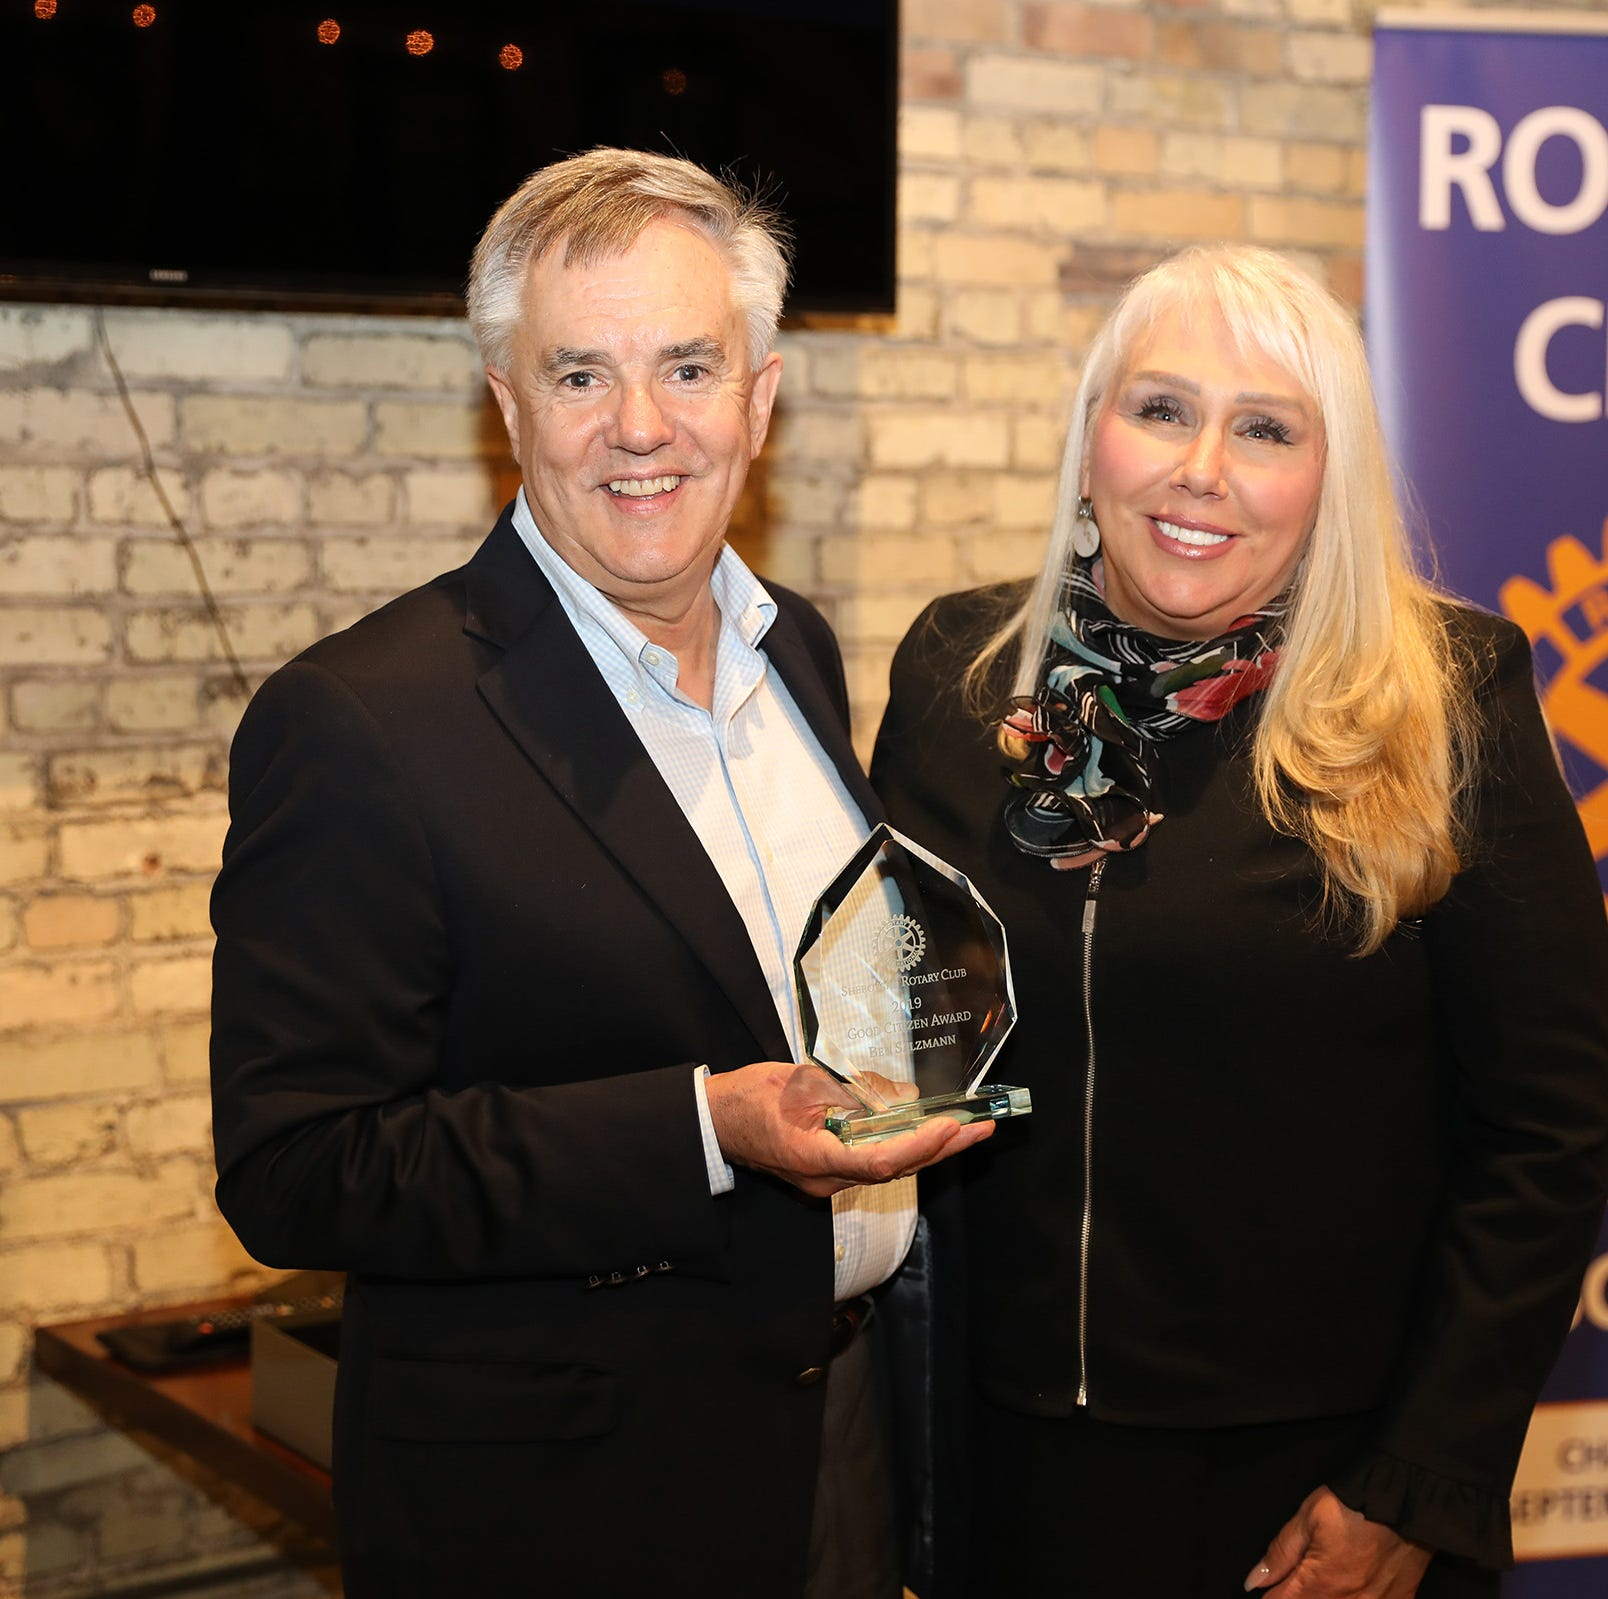 Acuity CEO named Sheboygan Rotary's Good Citizen of the Year | Business Briefs